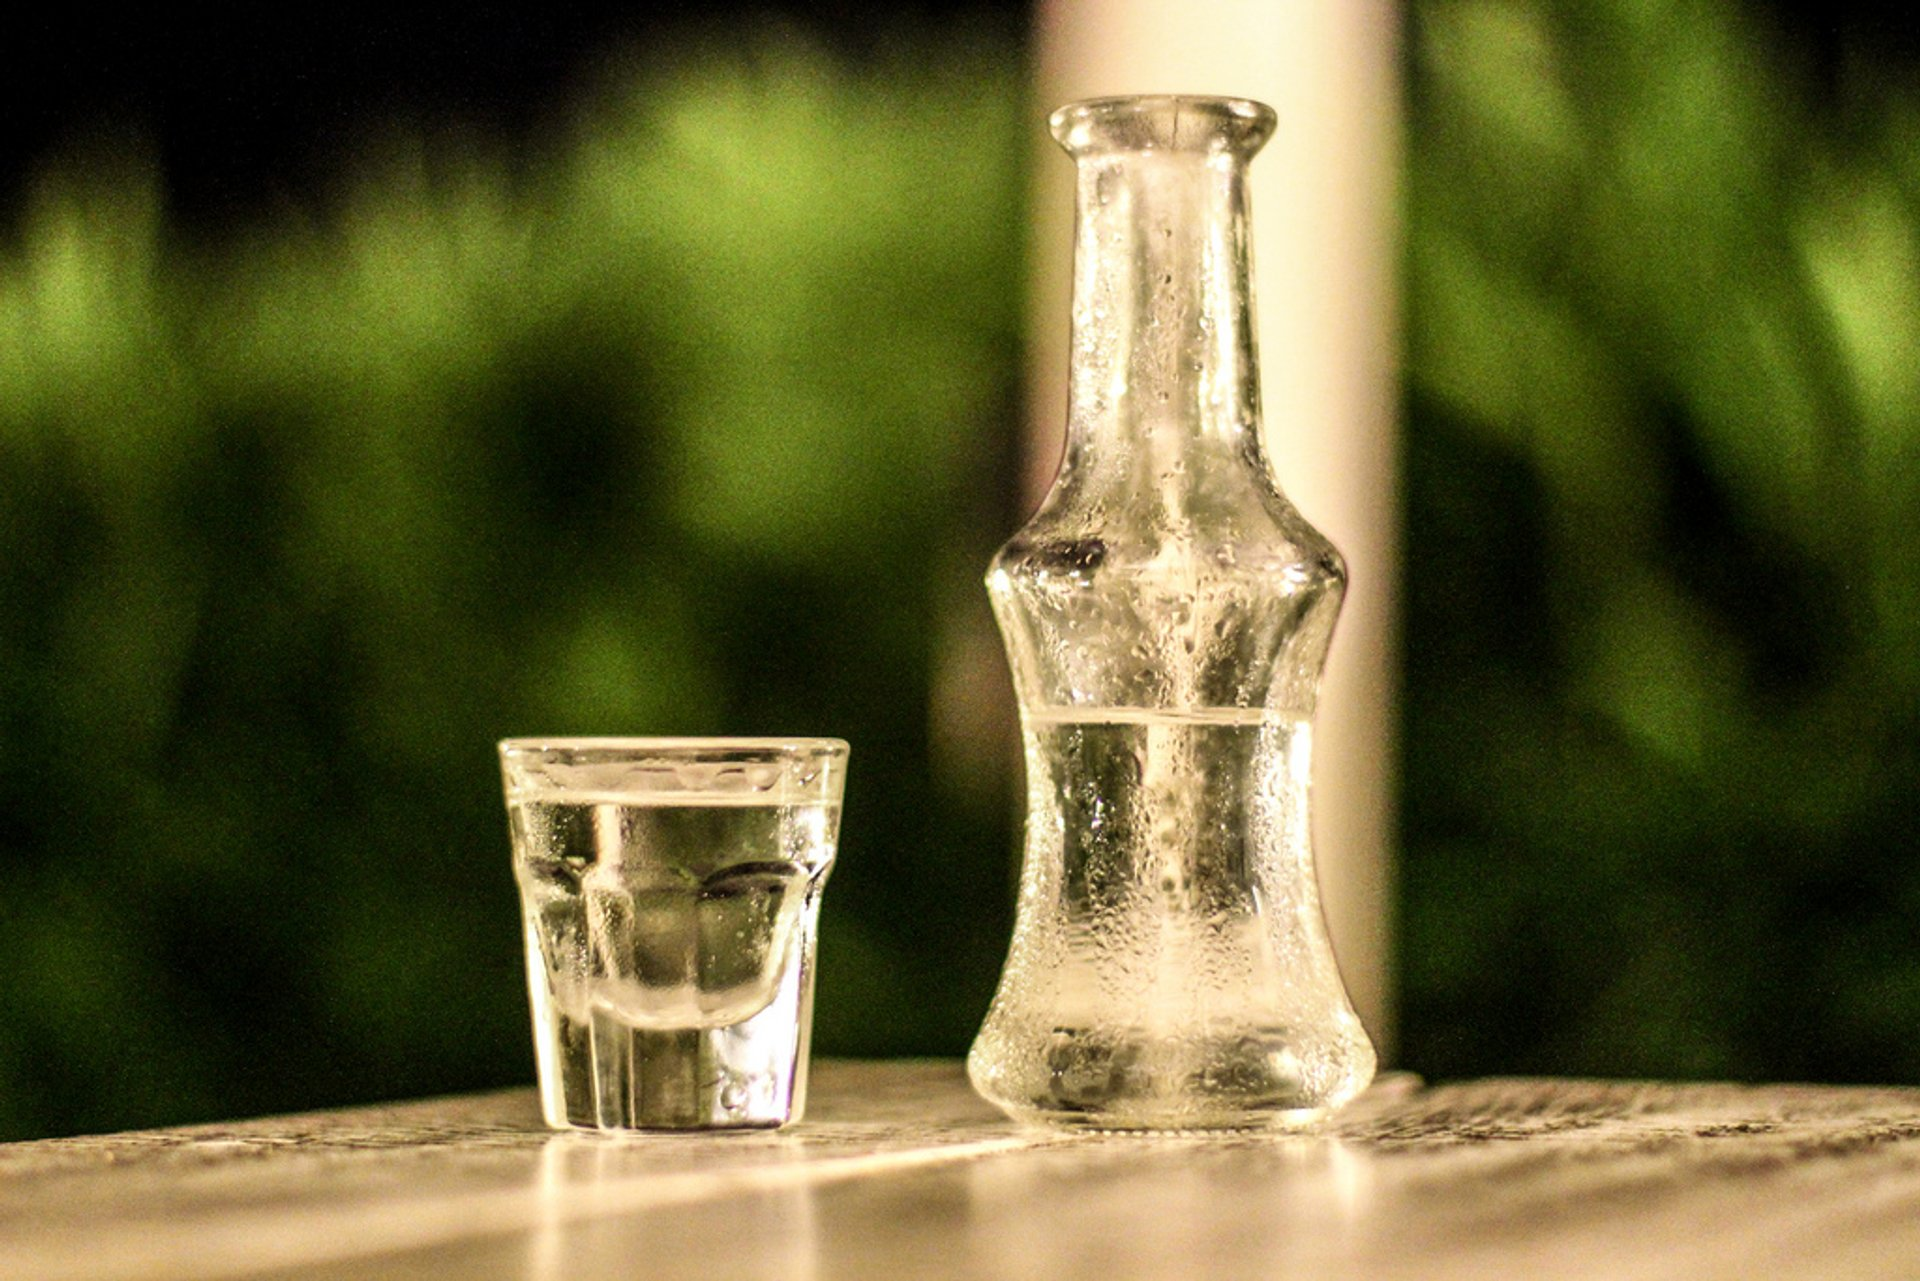 Tsikoudia (Cretan Raki) in Crete 2019 - Best Time